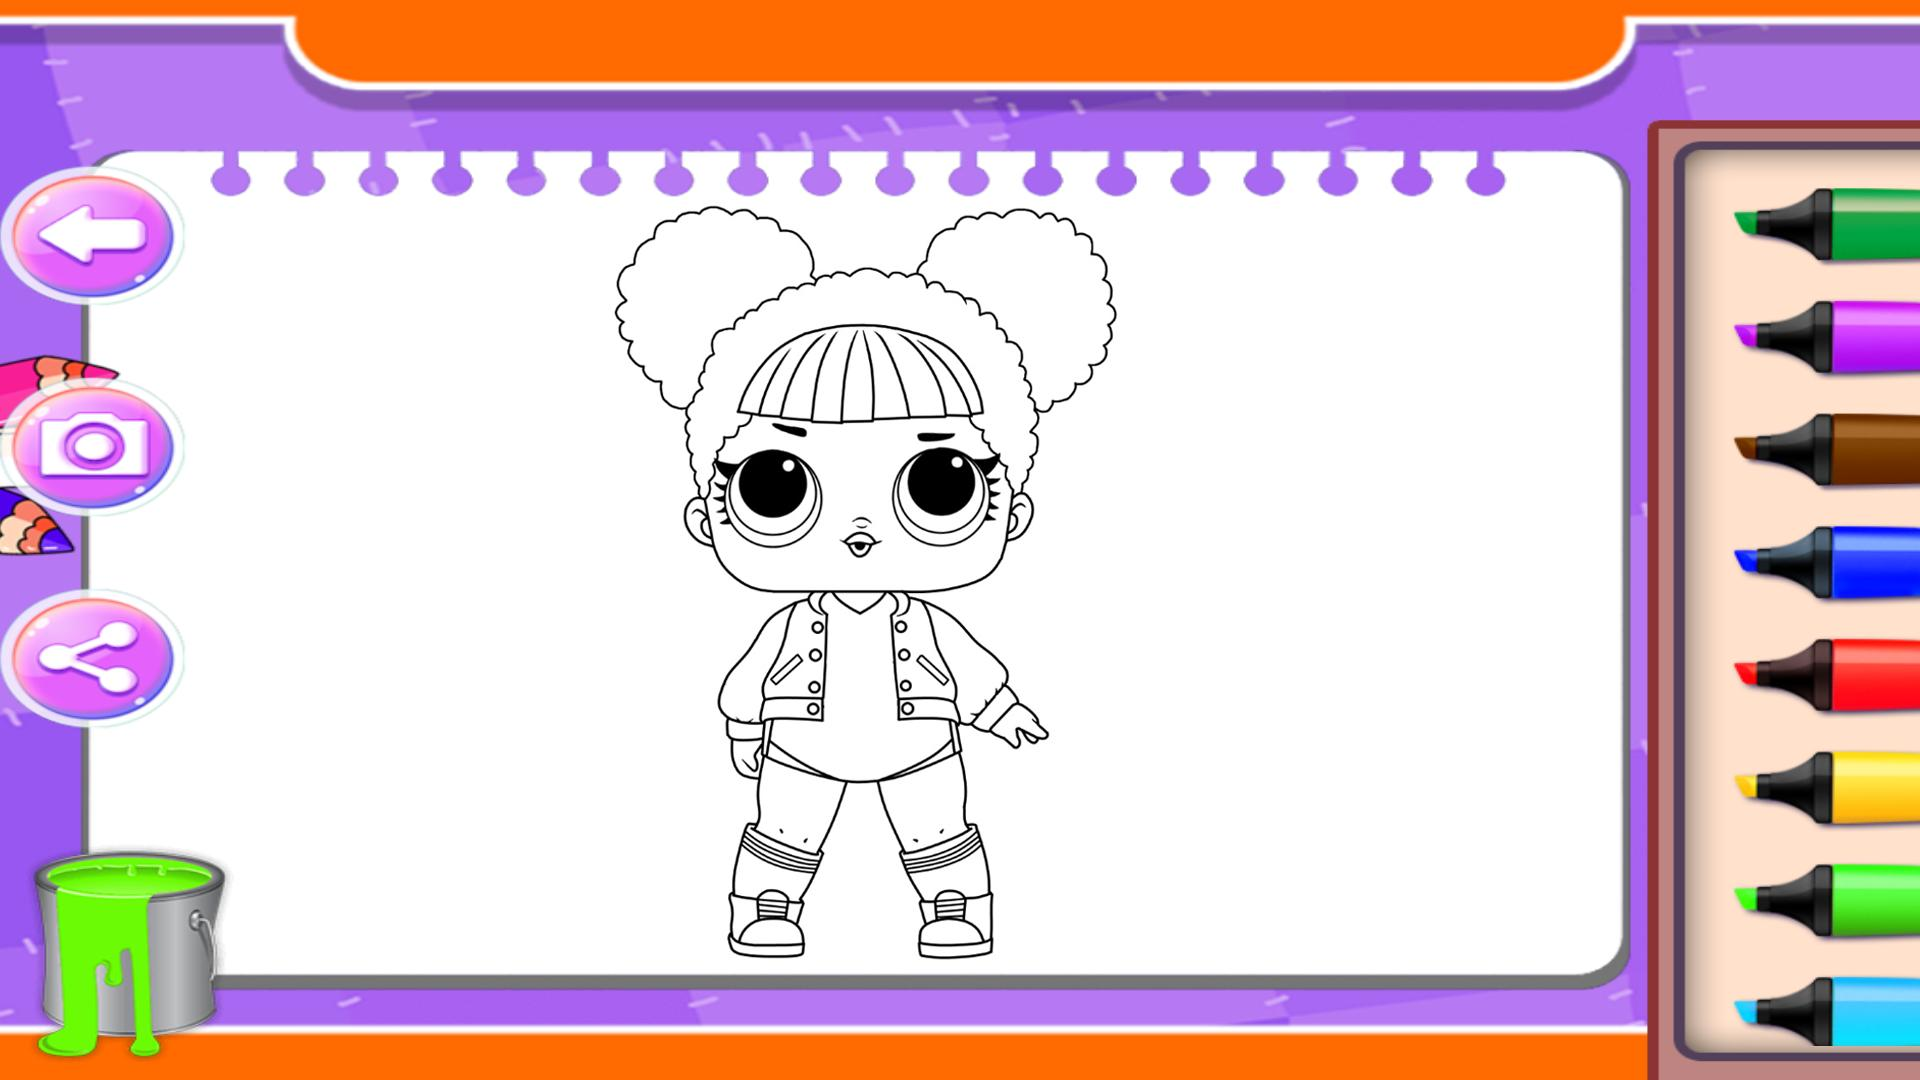 Surprise Coloring Pages Dolls for Android - APK Download